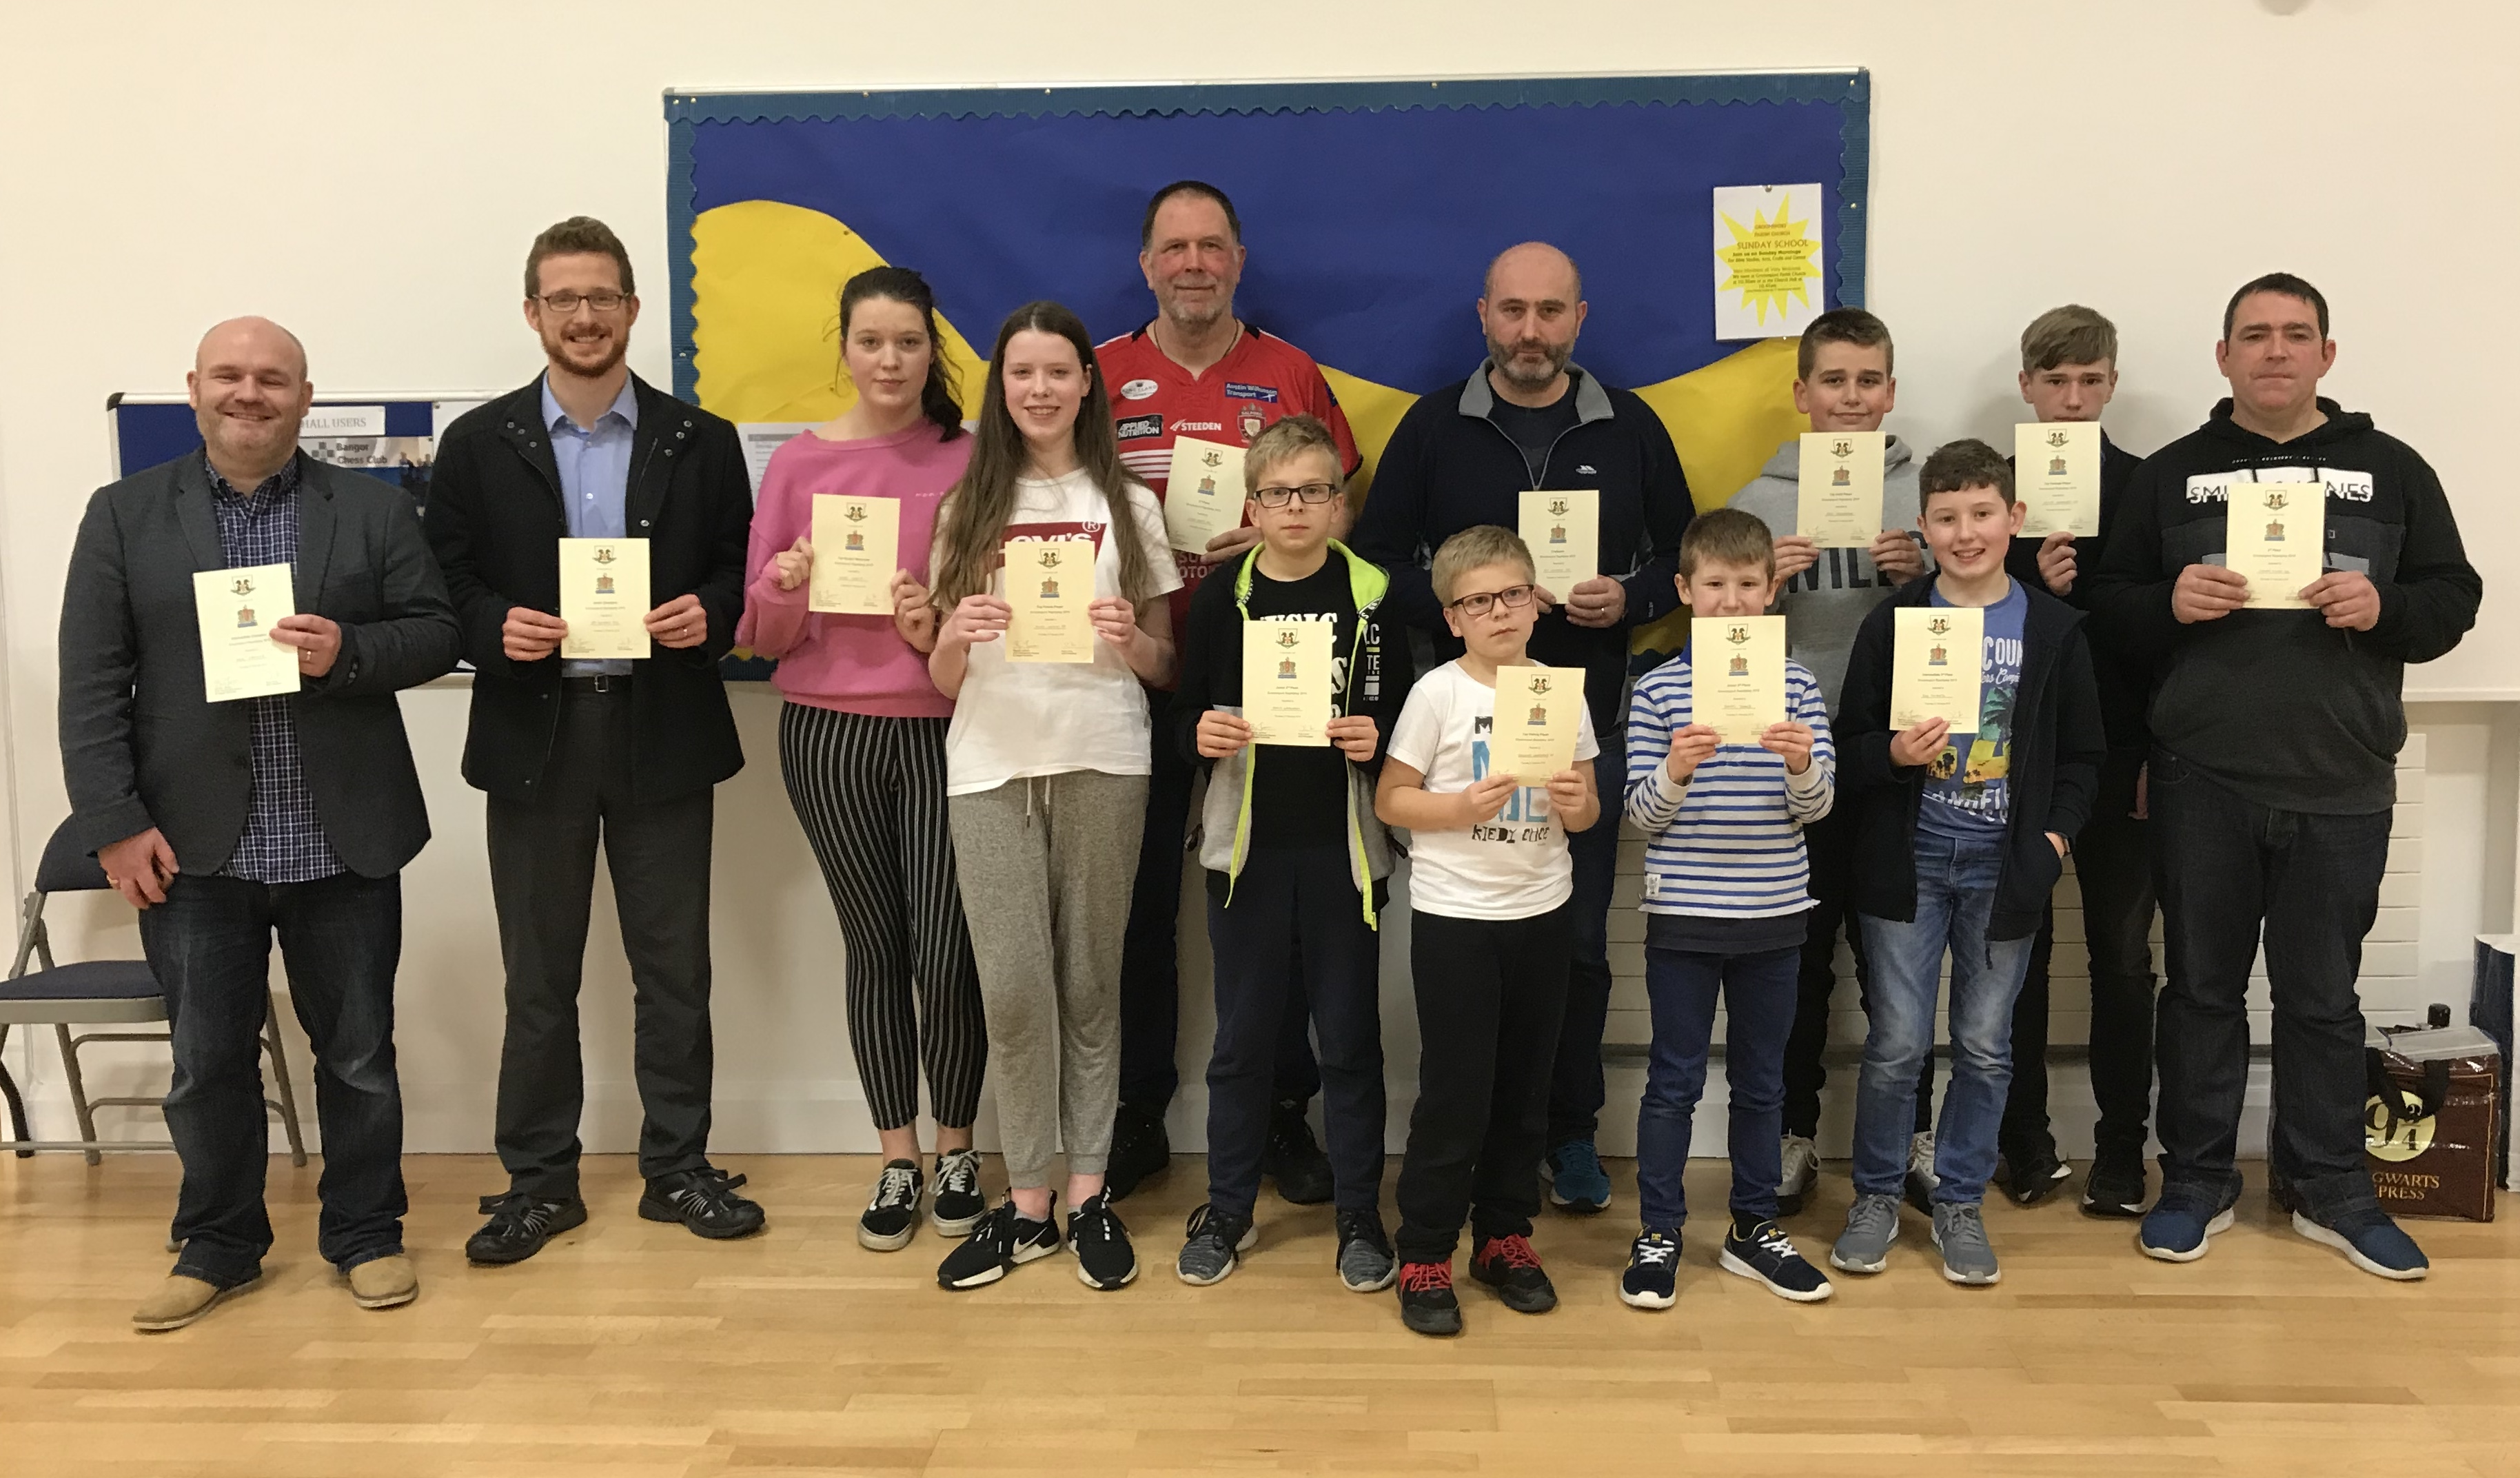 Players from USA and Poland flock to Groomsport for speed chess competition